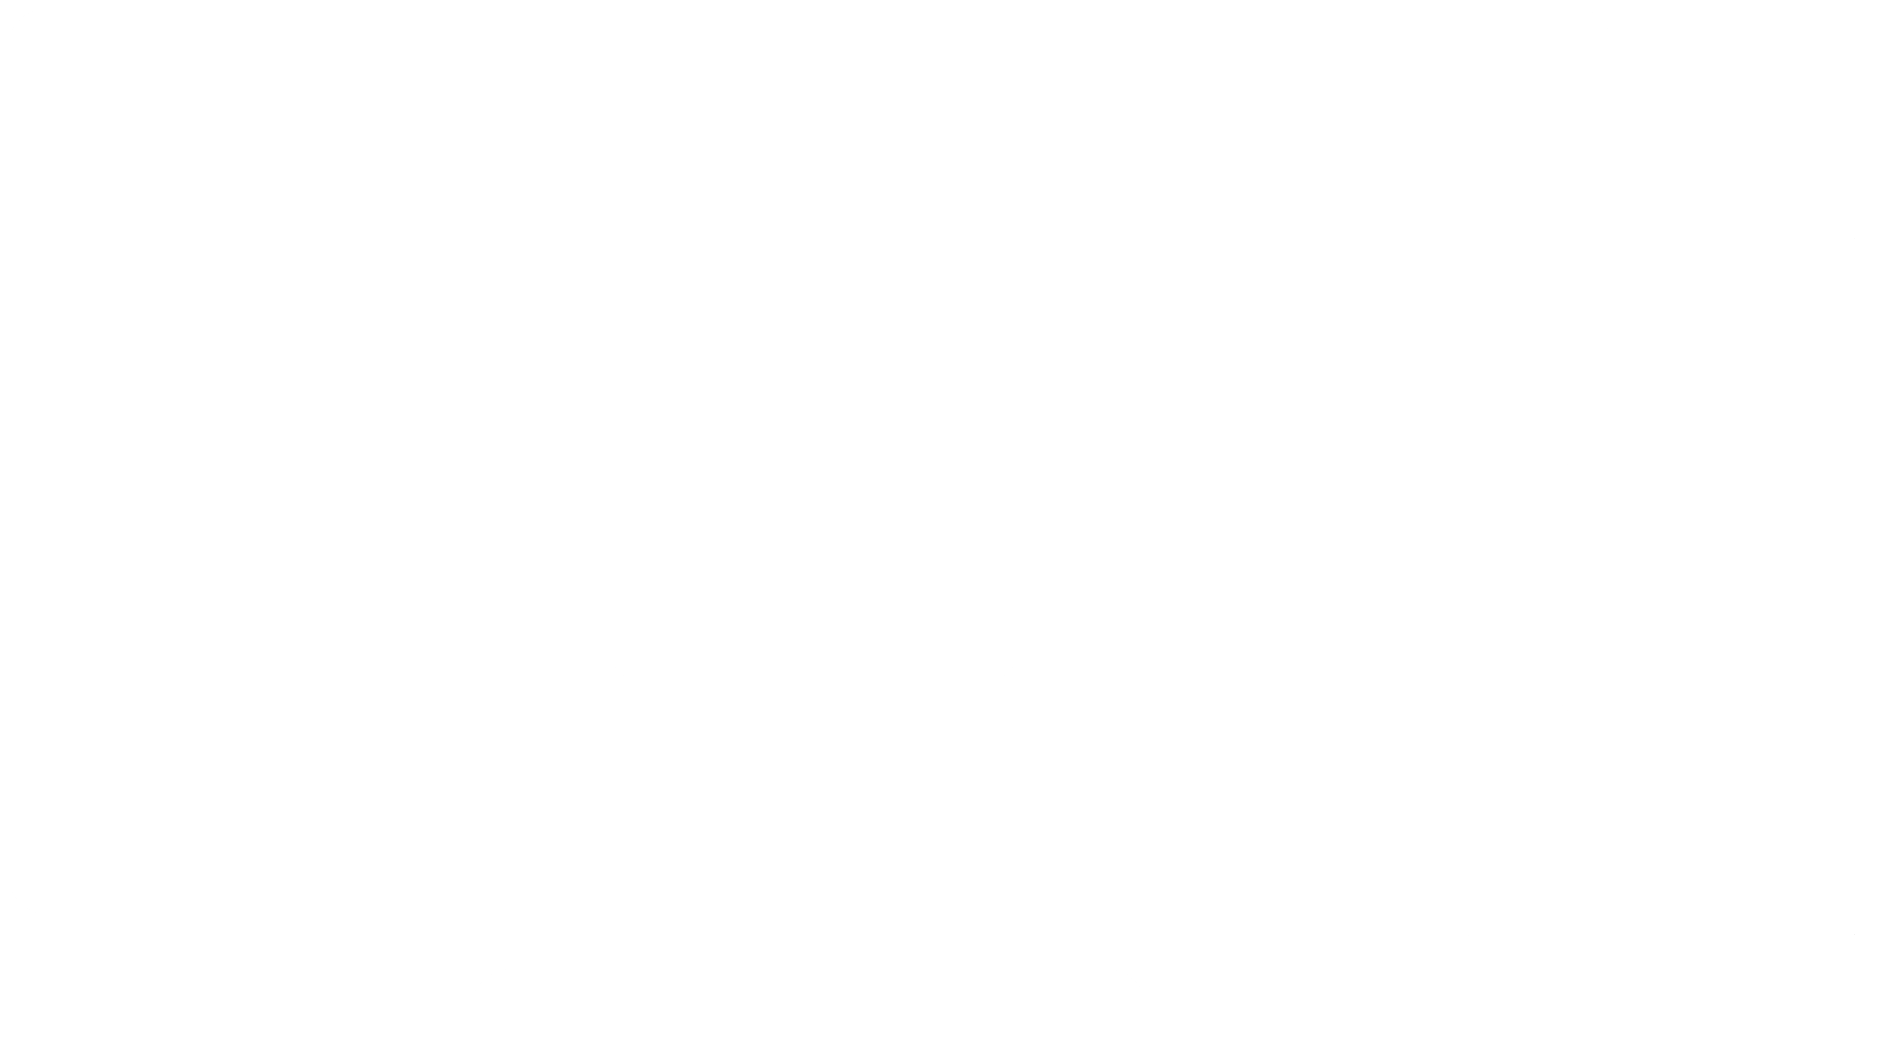 Computer and phone with calculator widget icon